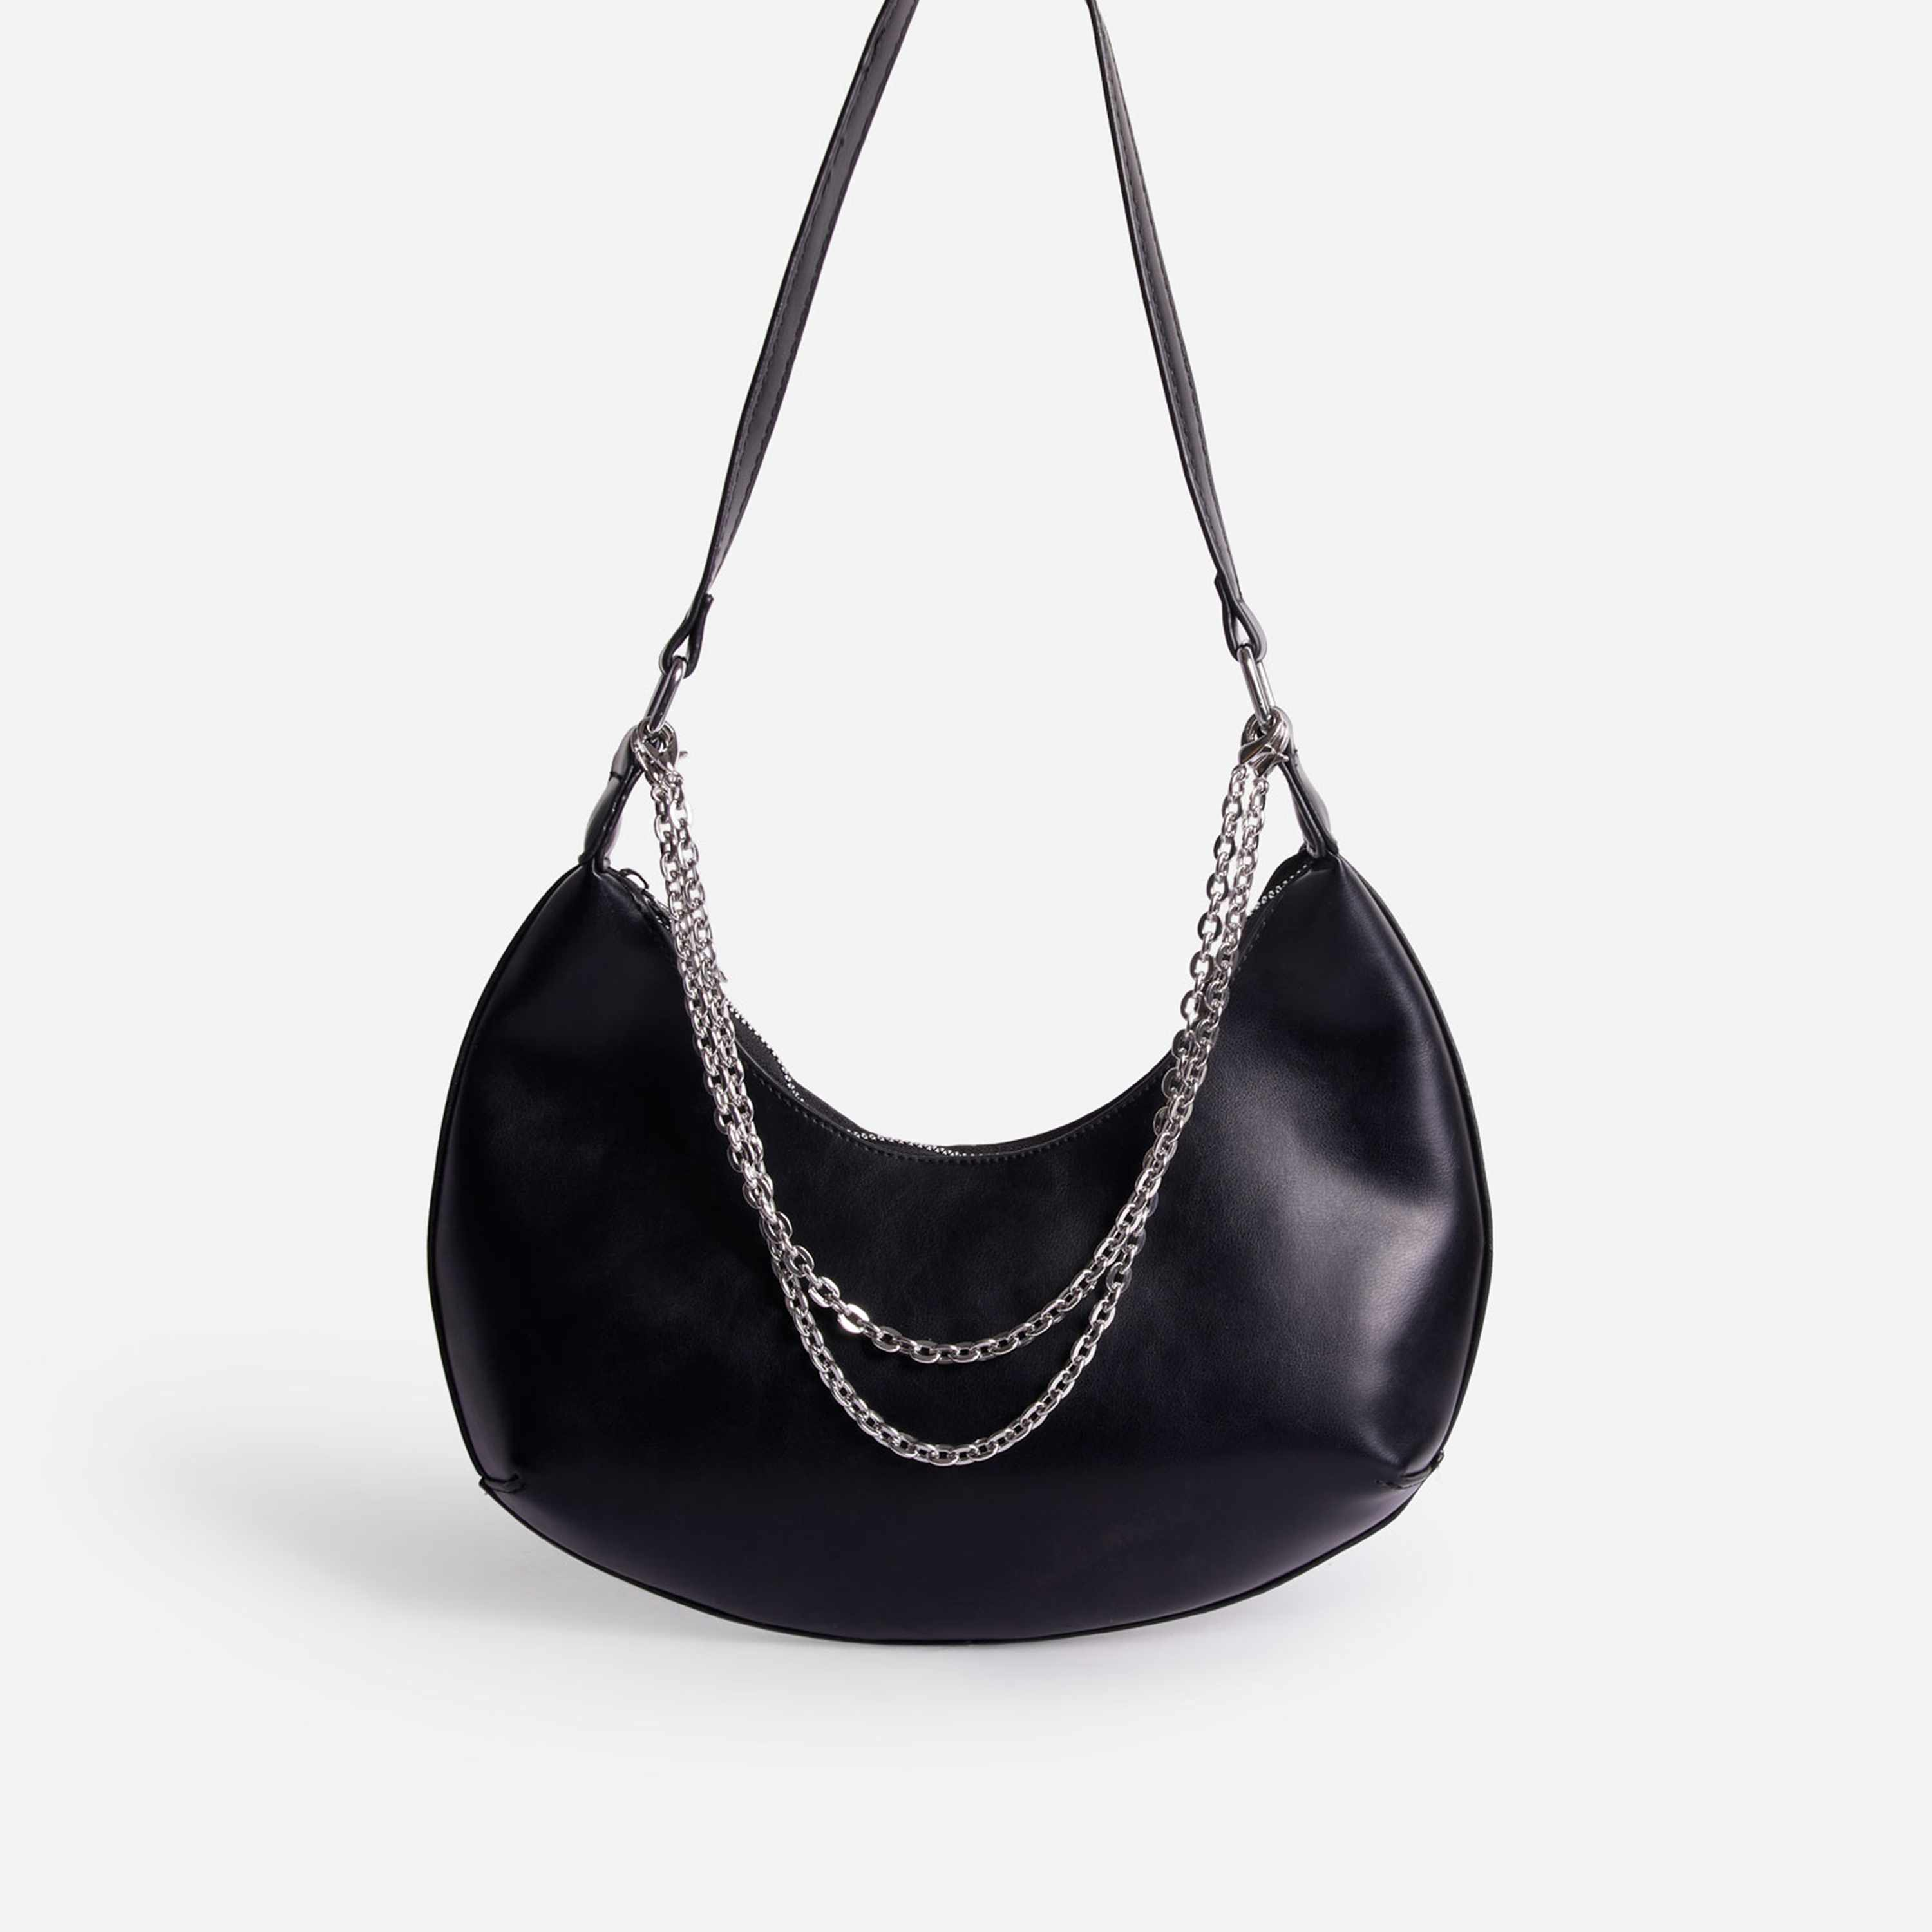 Truly Multi Chain Baguette Bag In Black Faux Leather